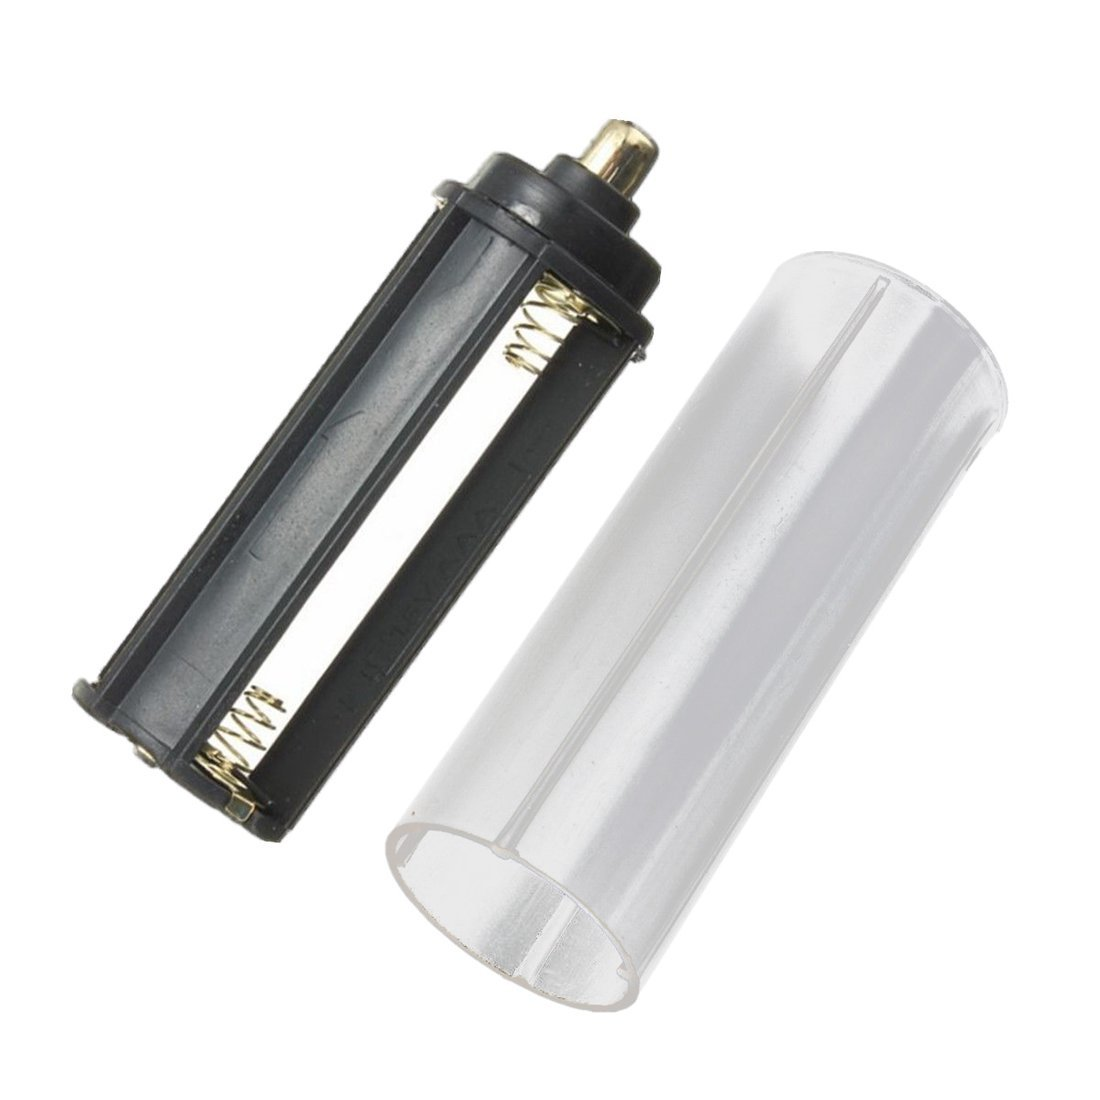 SODIAL(R) New 1PCS 18650 Battery Tube + 1PCS AAA Battery Holder for Flashlight Torch Lamp